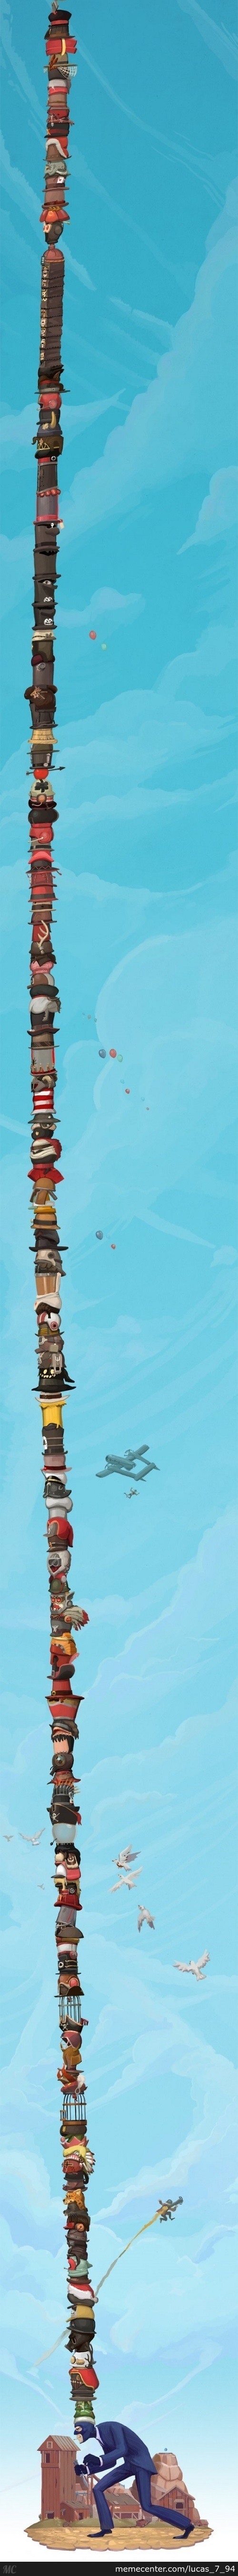 Toooooooowwwweeering Pillar Of Hats :d (Tf2)